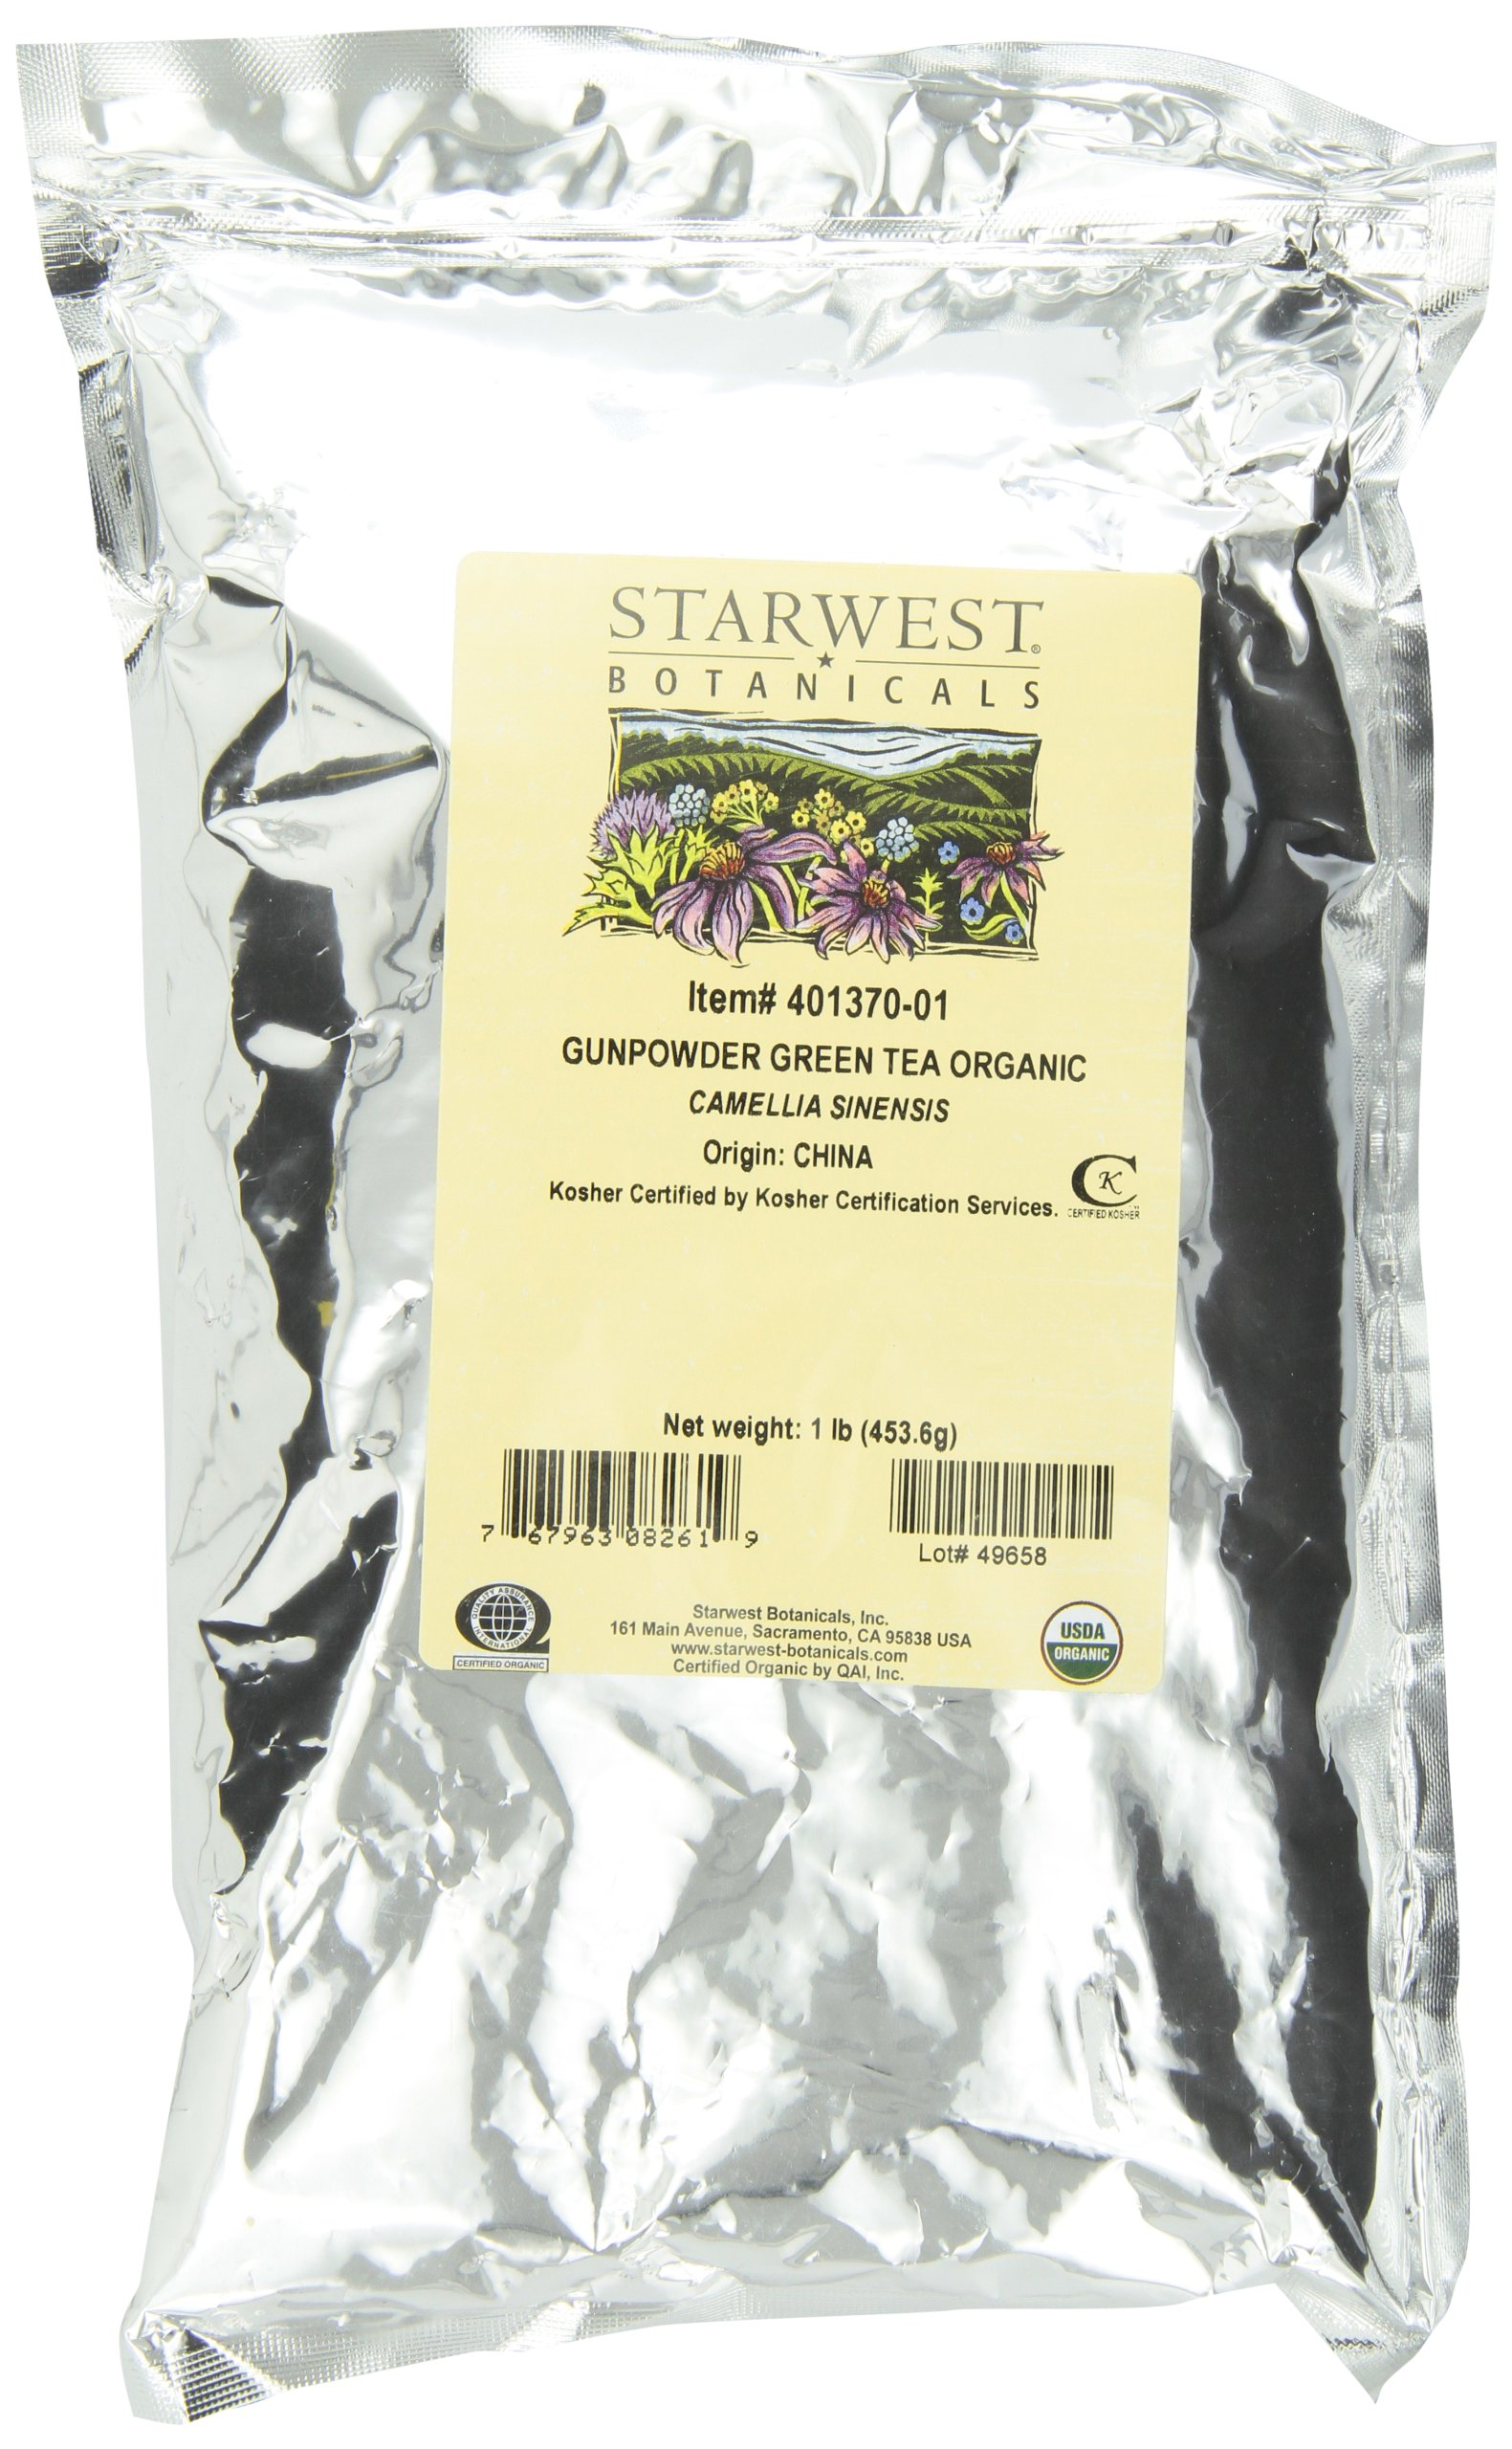 Starwest Botanicals Organic Gunpowder Green Tea, 1 Pound